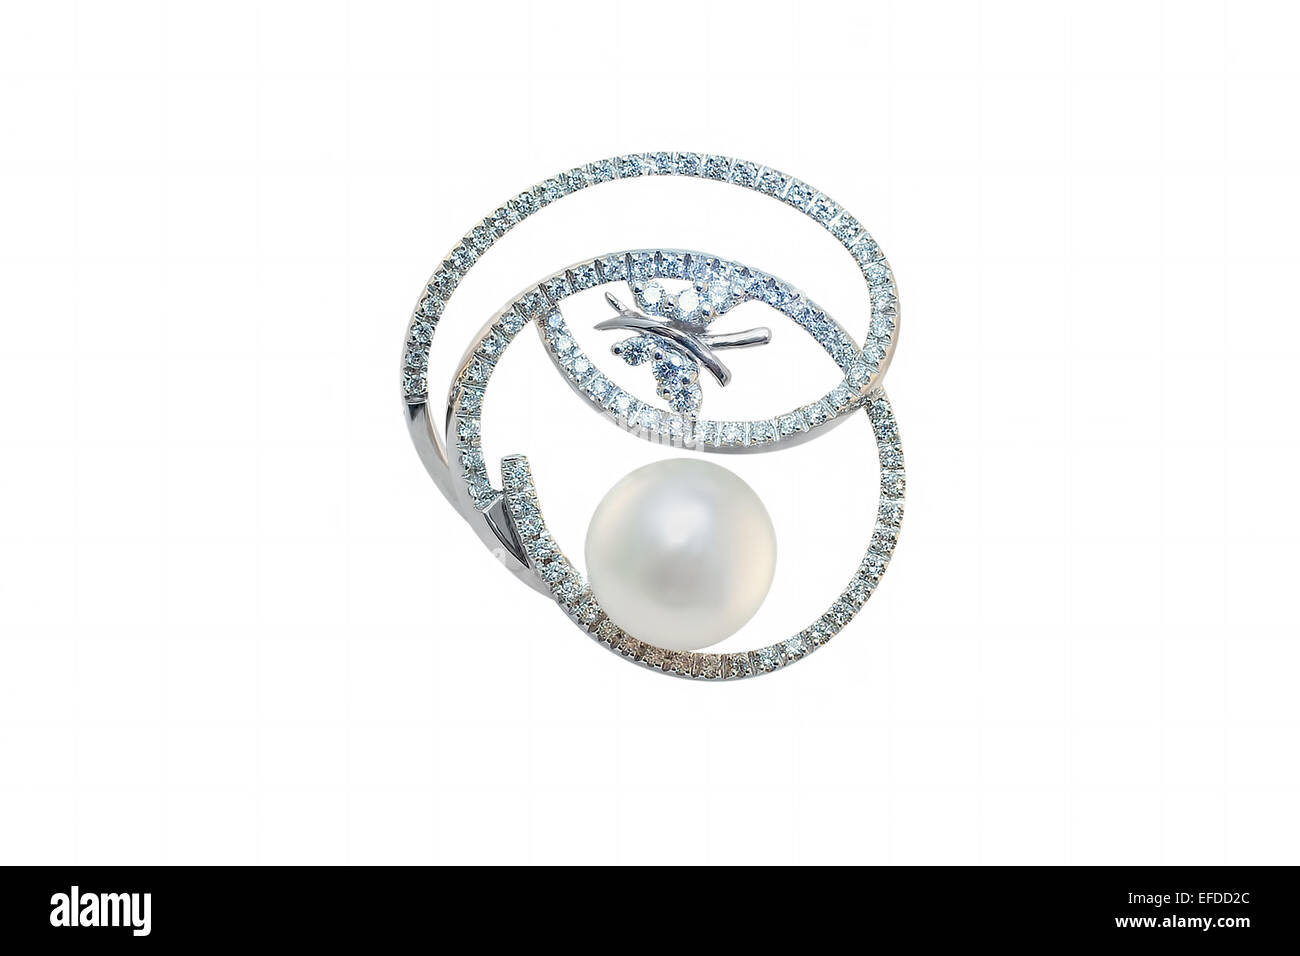 golden brooch with pearl and diamonds - Stock Image